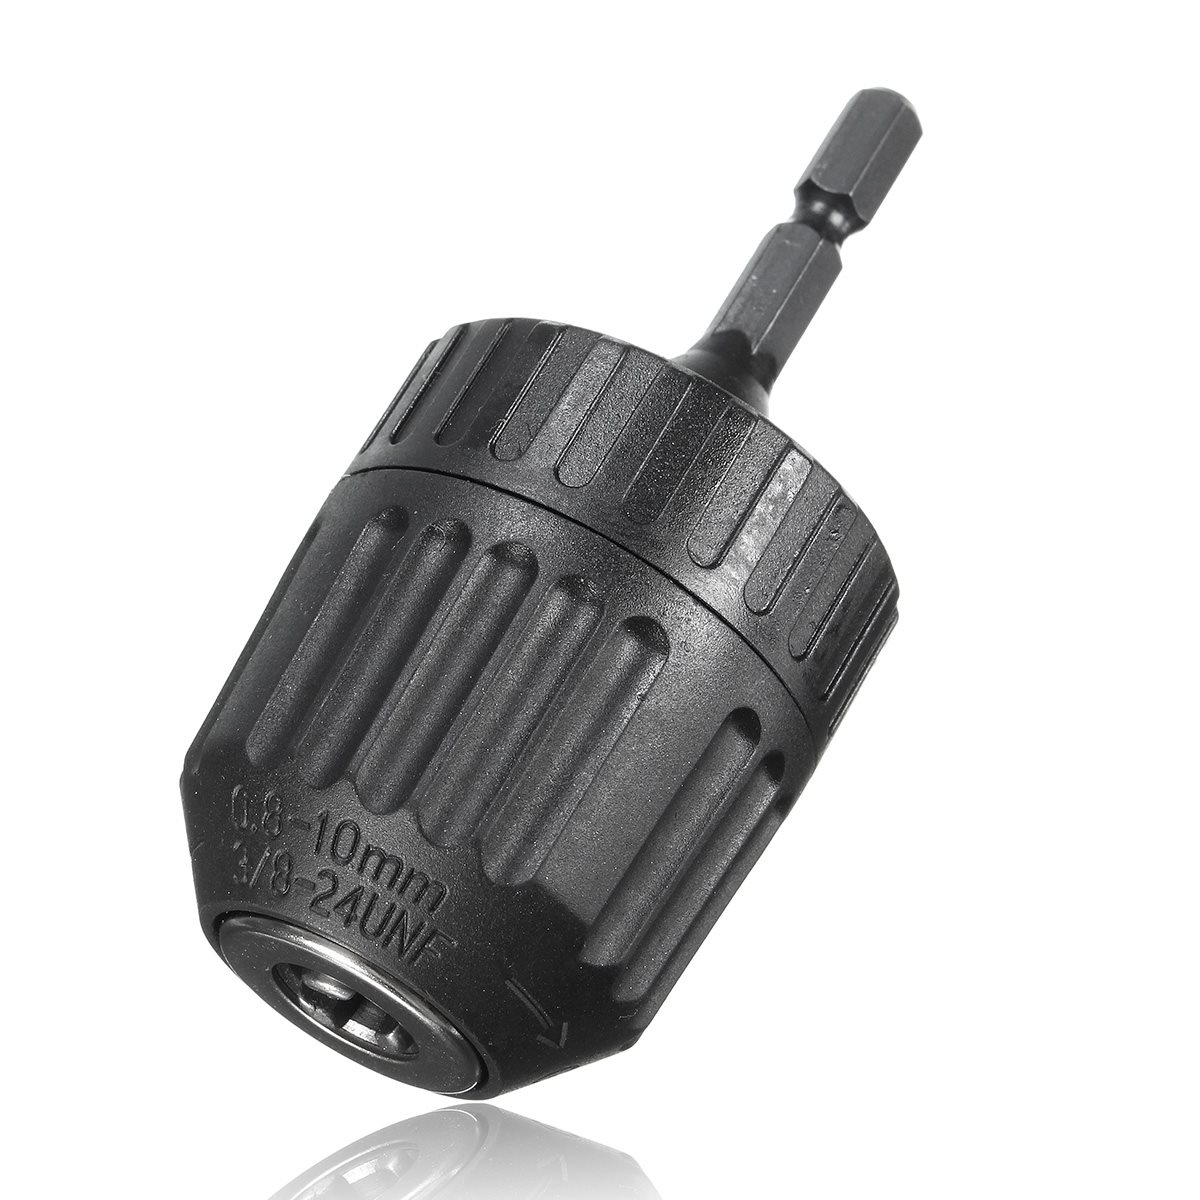 1PC 0.8-10mm Keyless Mini Drill Chuck Adaptor Converter 3/8 24UNF + 1/4 Hex Shank SDS Power Tool Accessories new rotary b12 hammer drill chuck tool cap 1 5 10mm 3 8 mount 3 8 24unf converion sds shank adapter